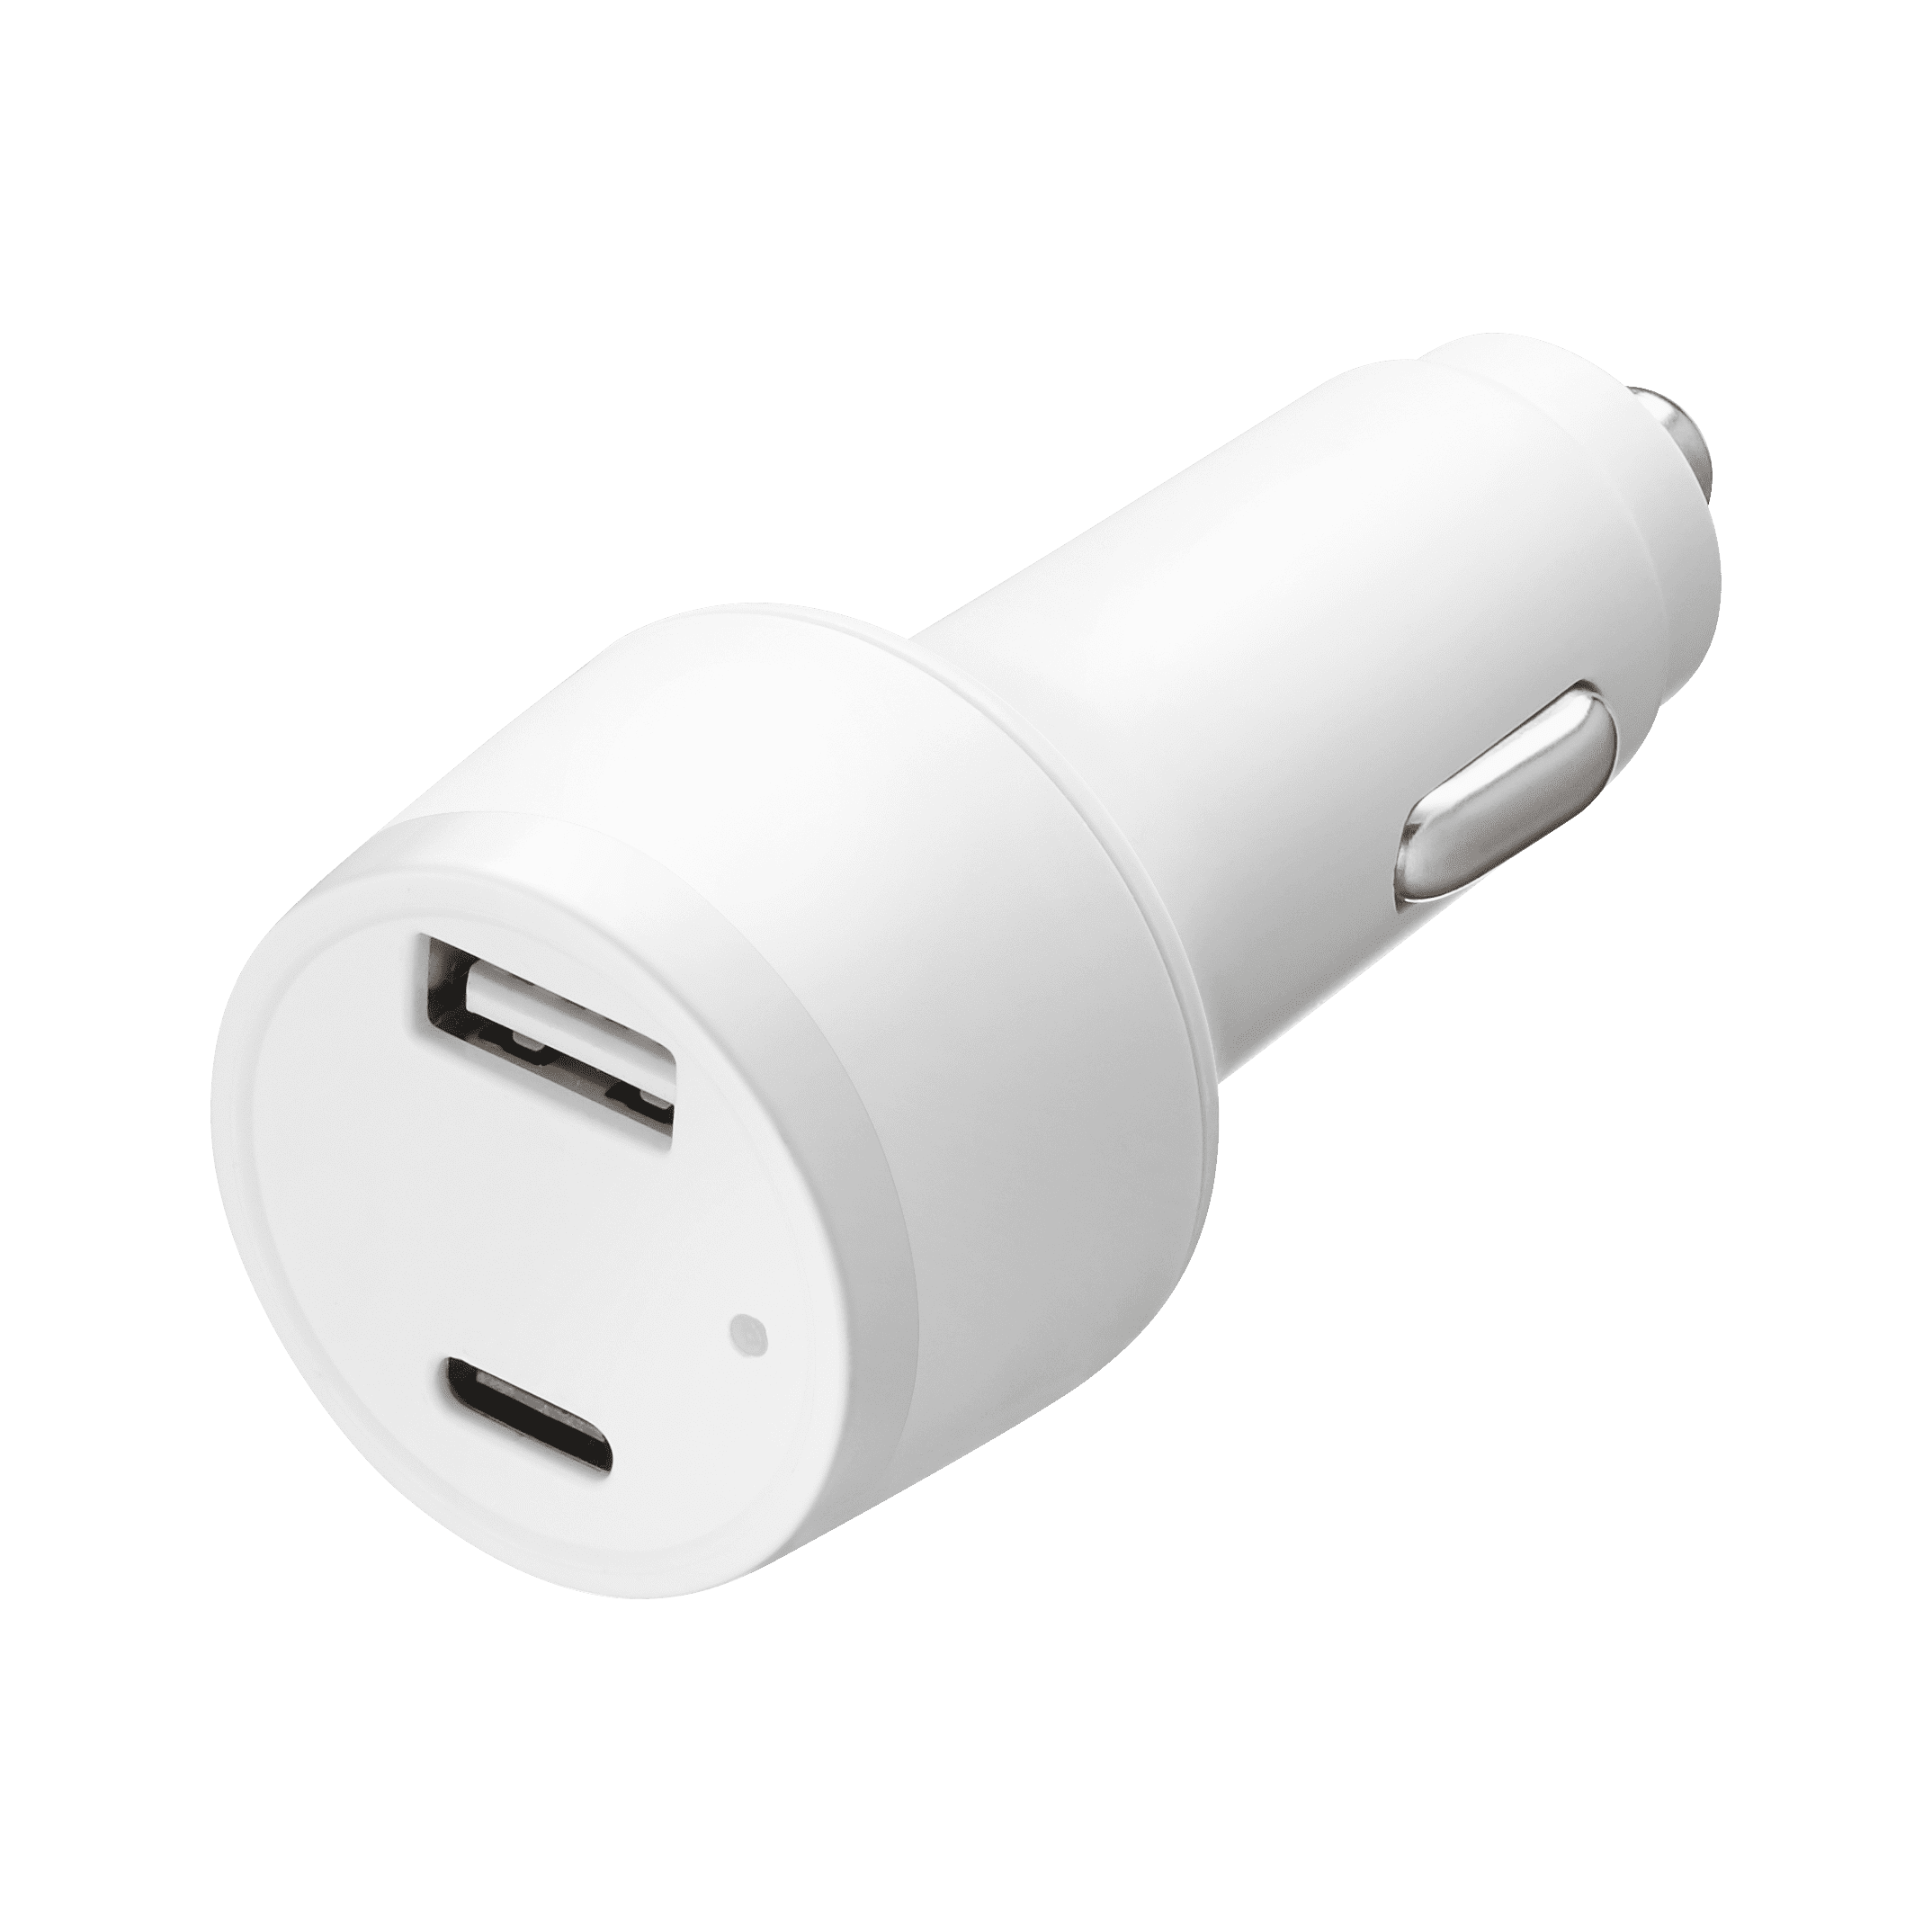 TPD-B42W24W 42W PD  USB C + USB A (2.4A) Type-C Car Charger